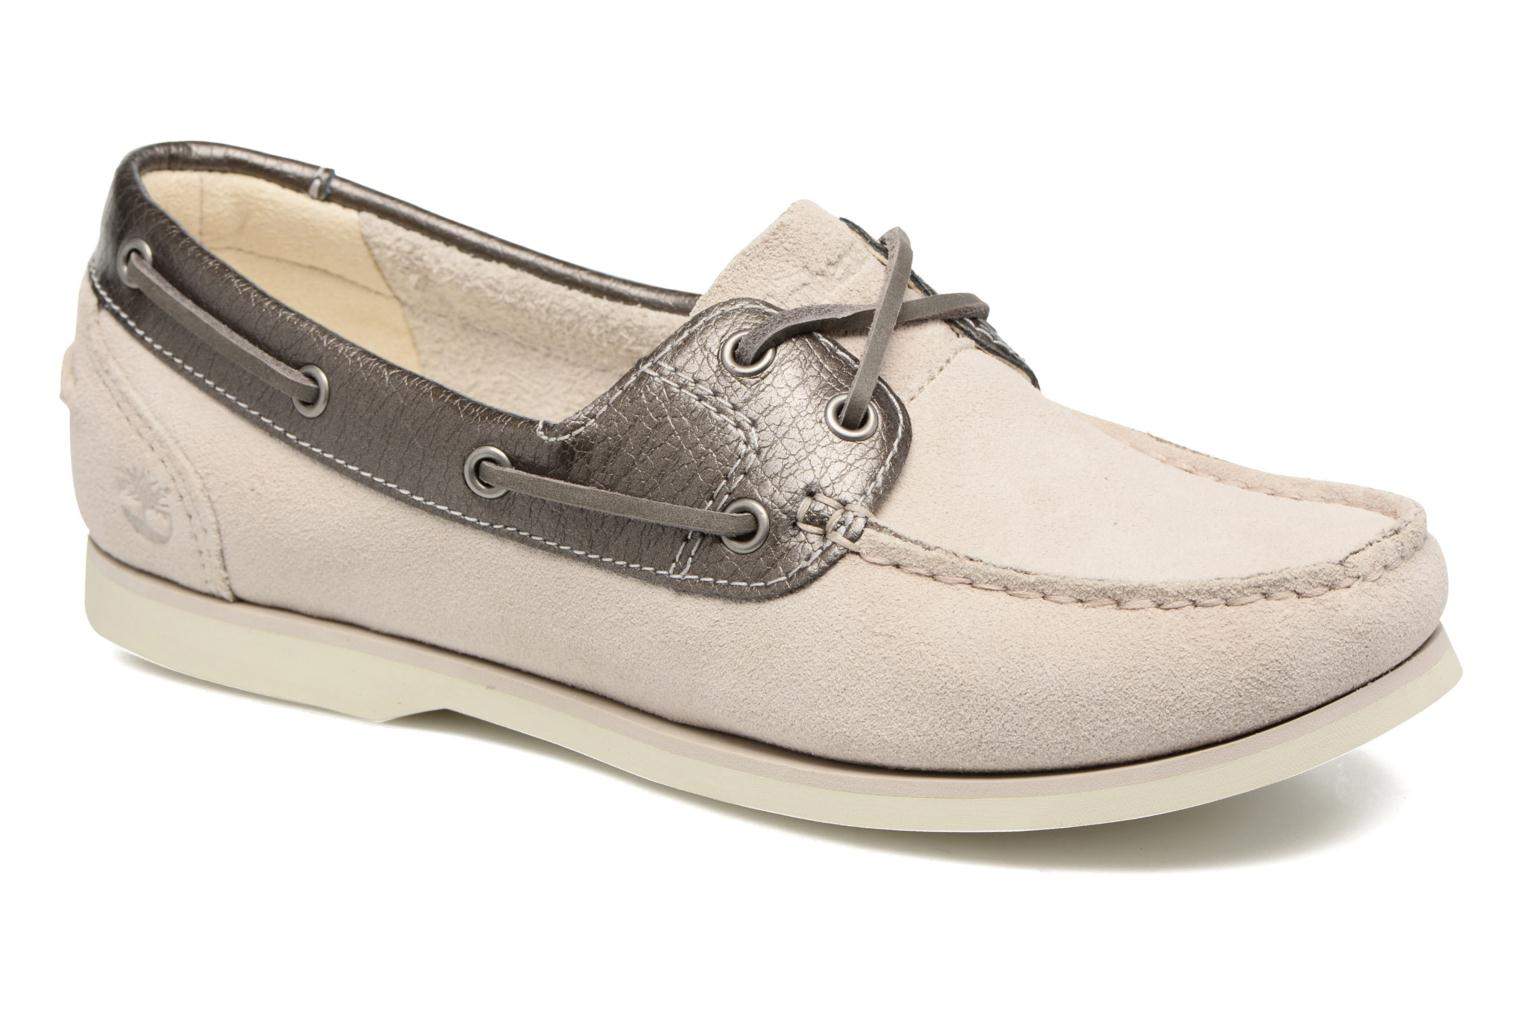 Classic Boat Unlined Boat Rainy Day Suede w/Gunmetal Metallic